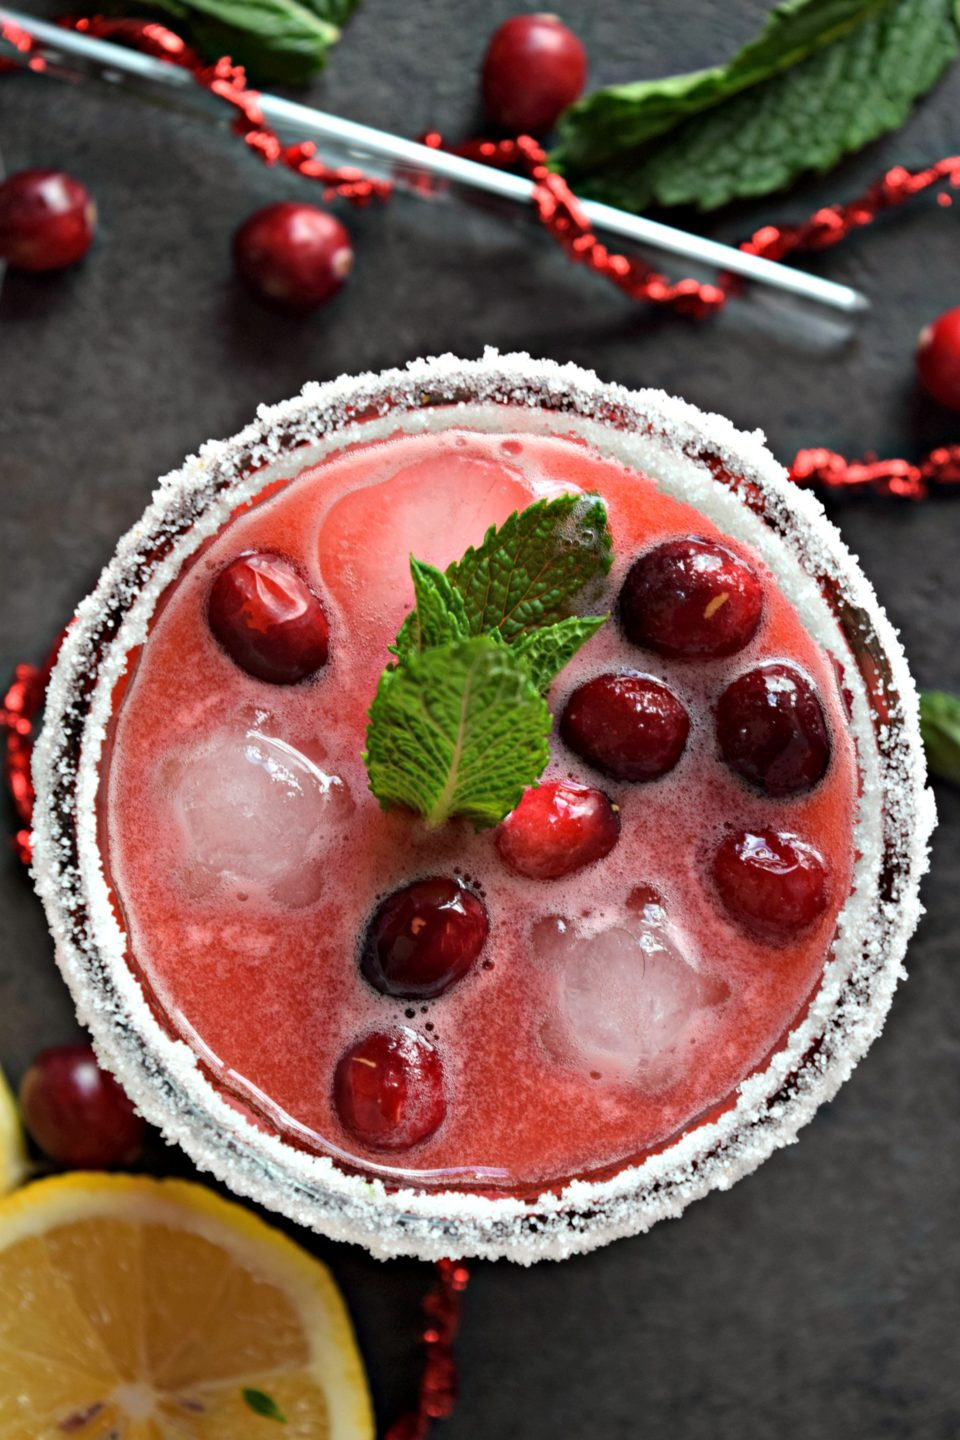 Amortentia in a glass with floating cherries on top